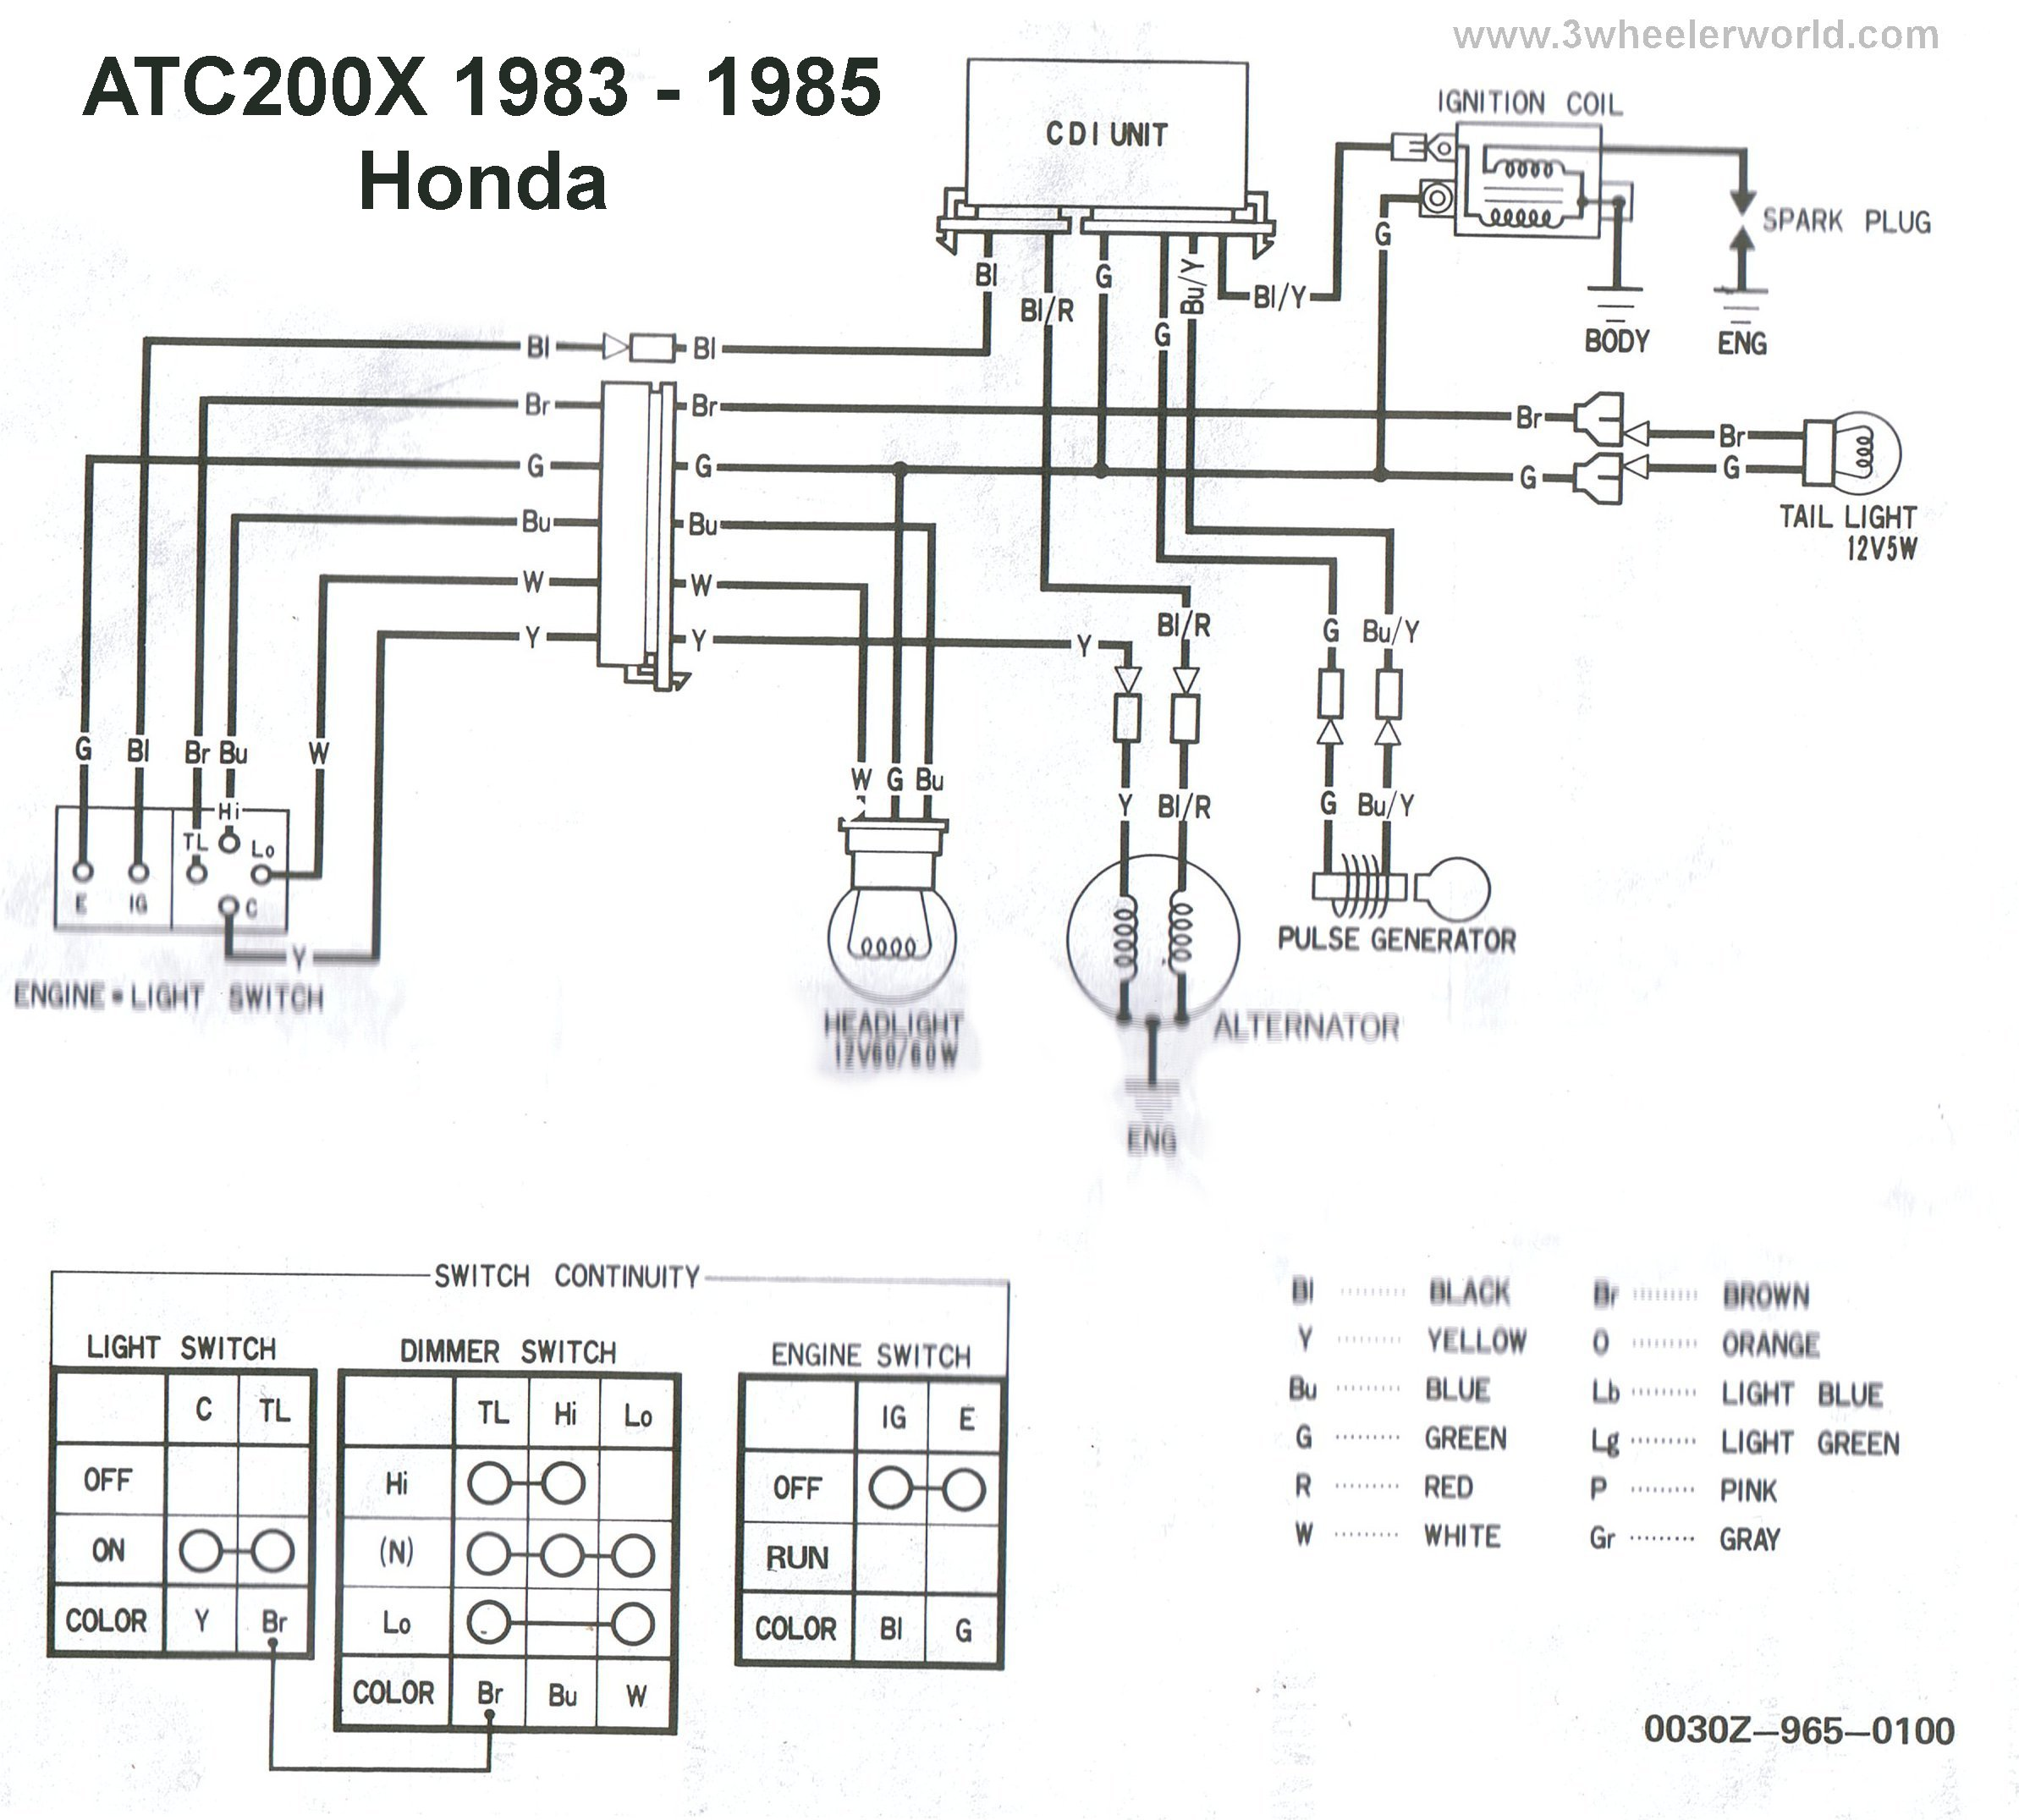 ATC200Xx83Thru85HM 1985 honda atc 70 wiring diagram wiring diagram and schematic design wiring diagram for honda atc 200 at bayanpartner.co